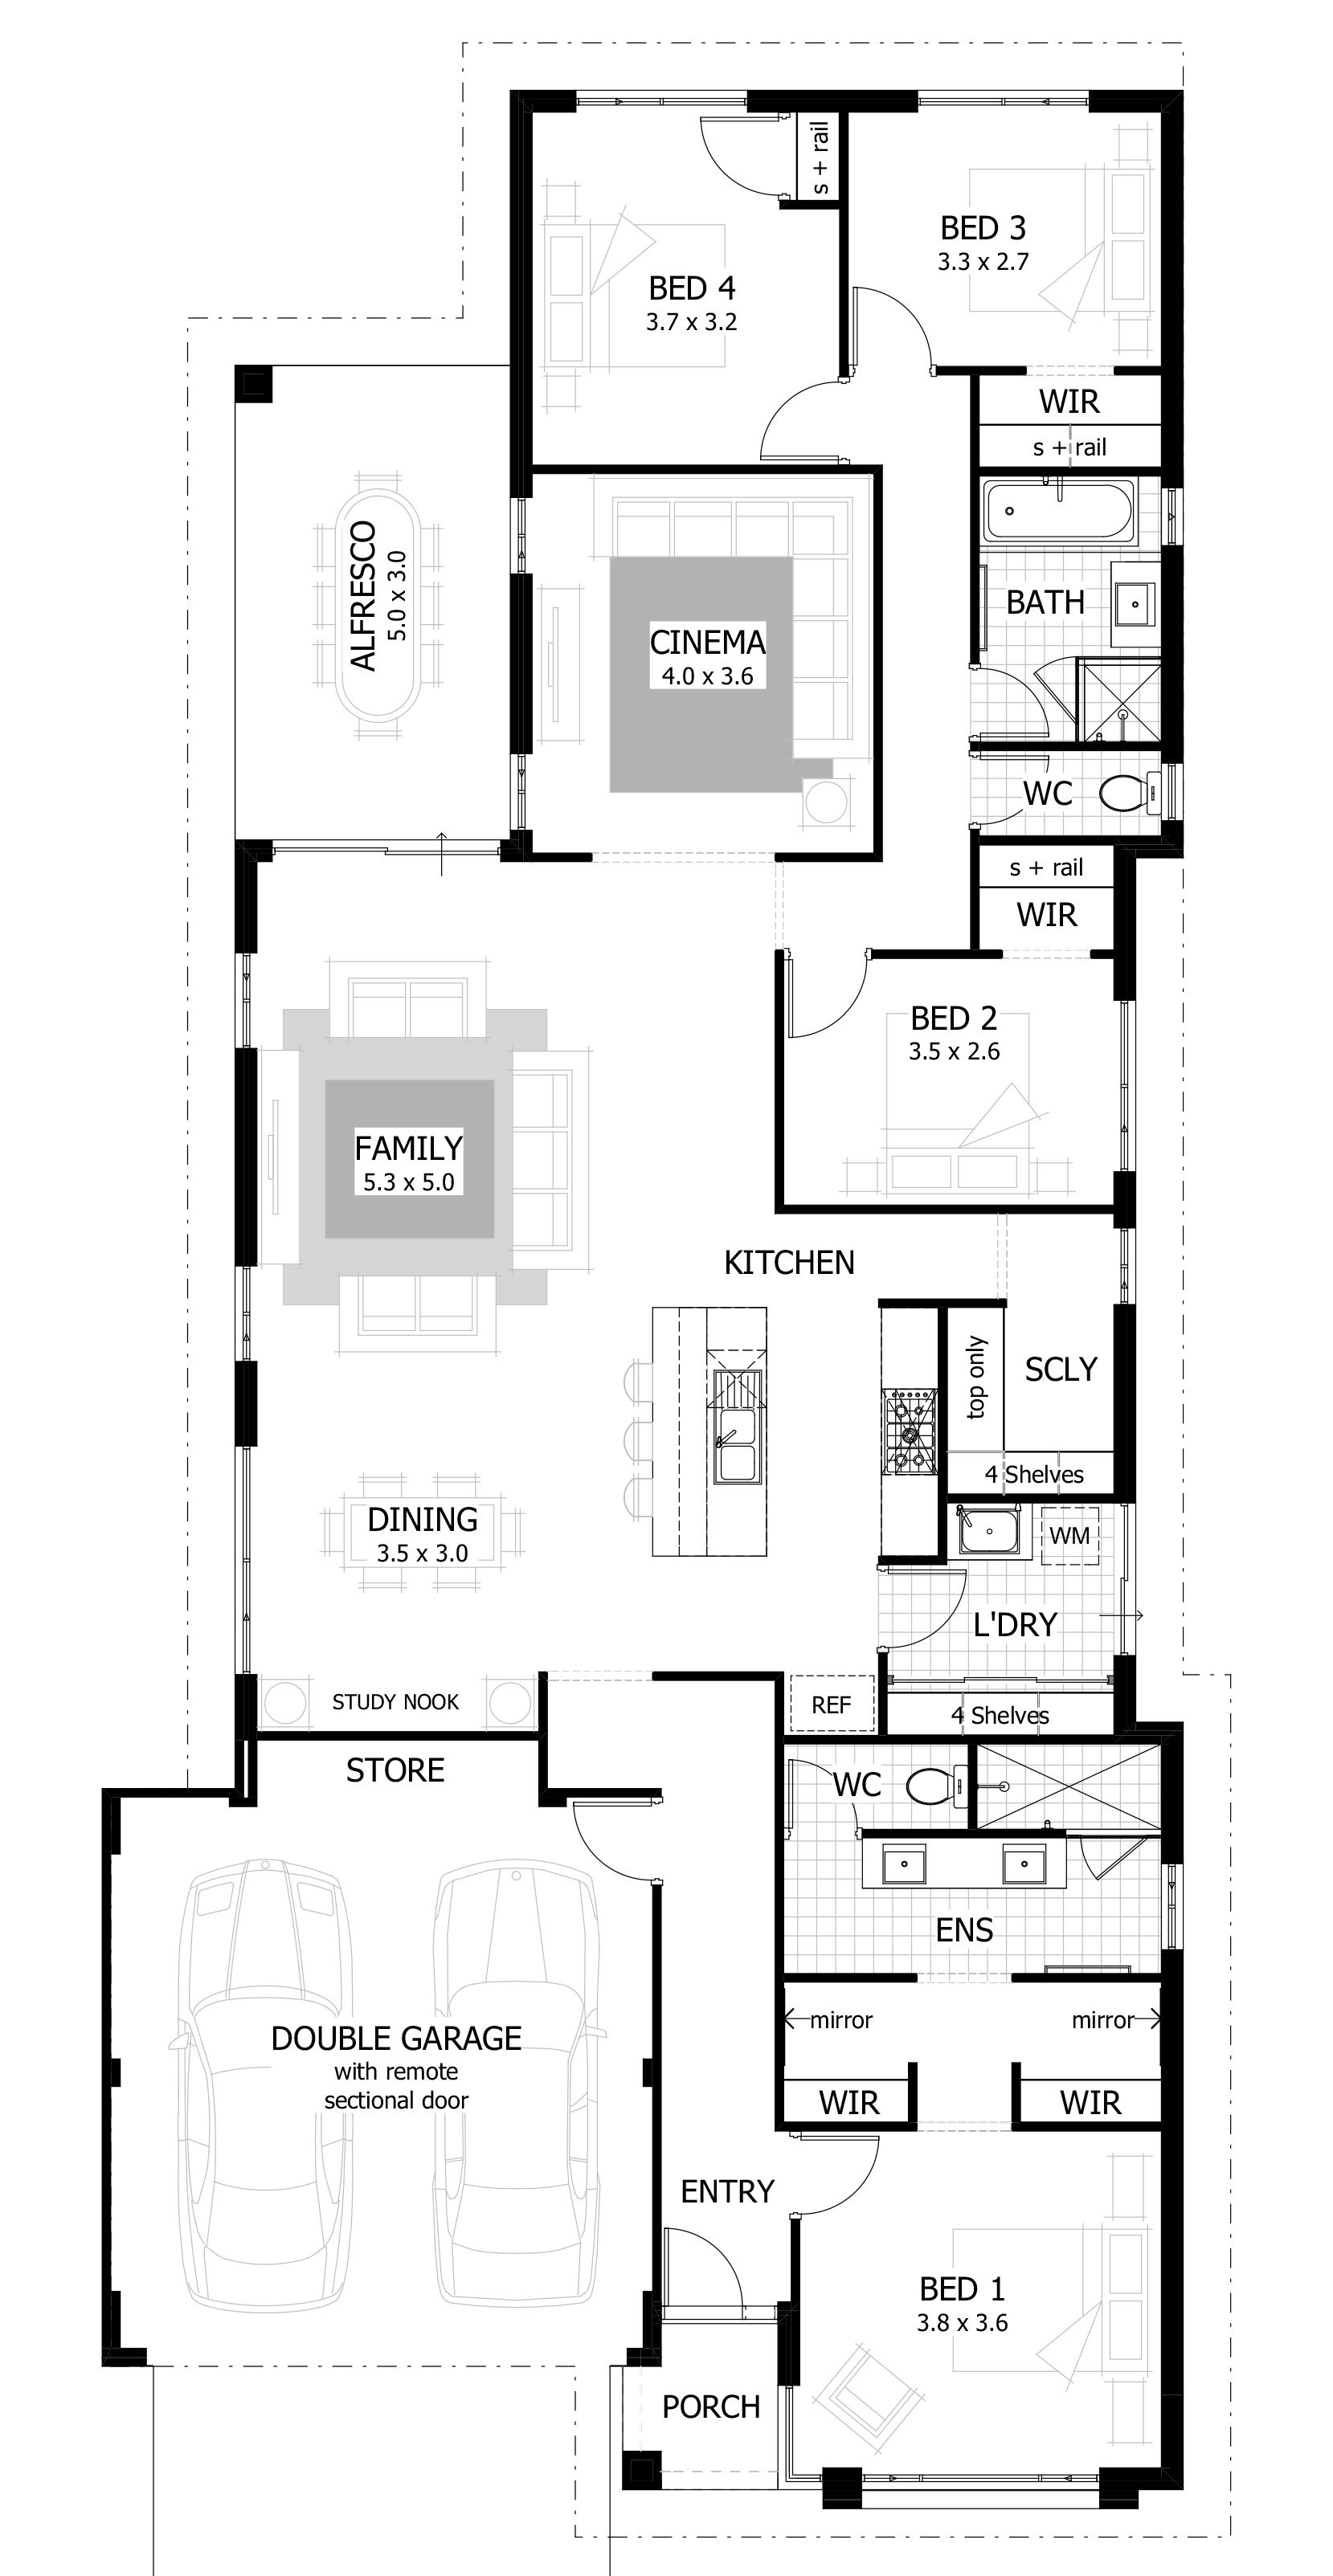 12 Metre Wide Home Designs Celebration Homes Single Storey House Plans Flat House Design House Plans